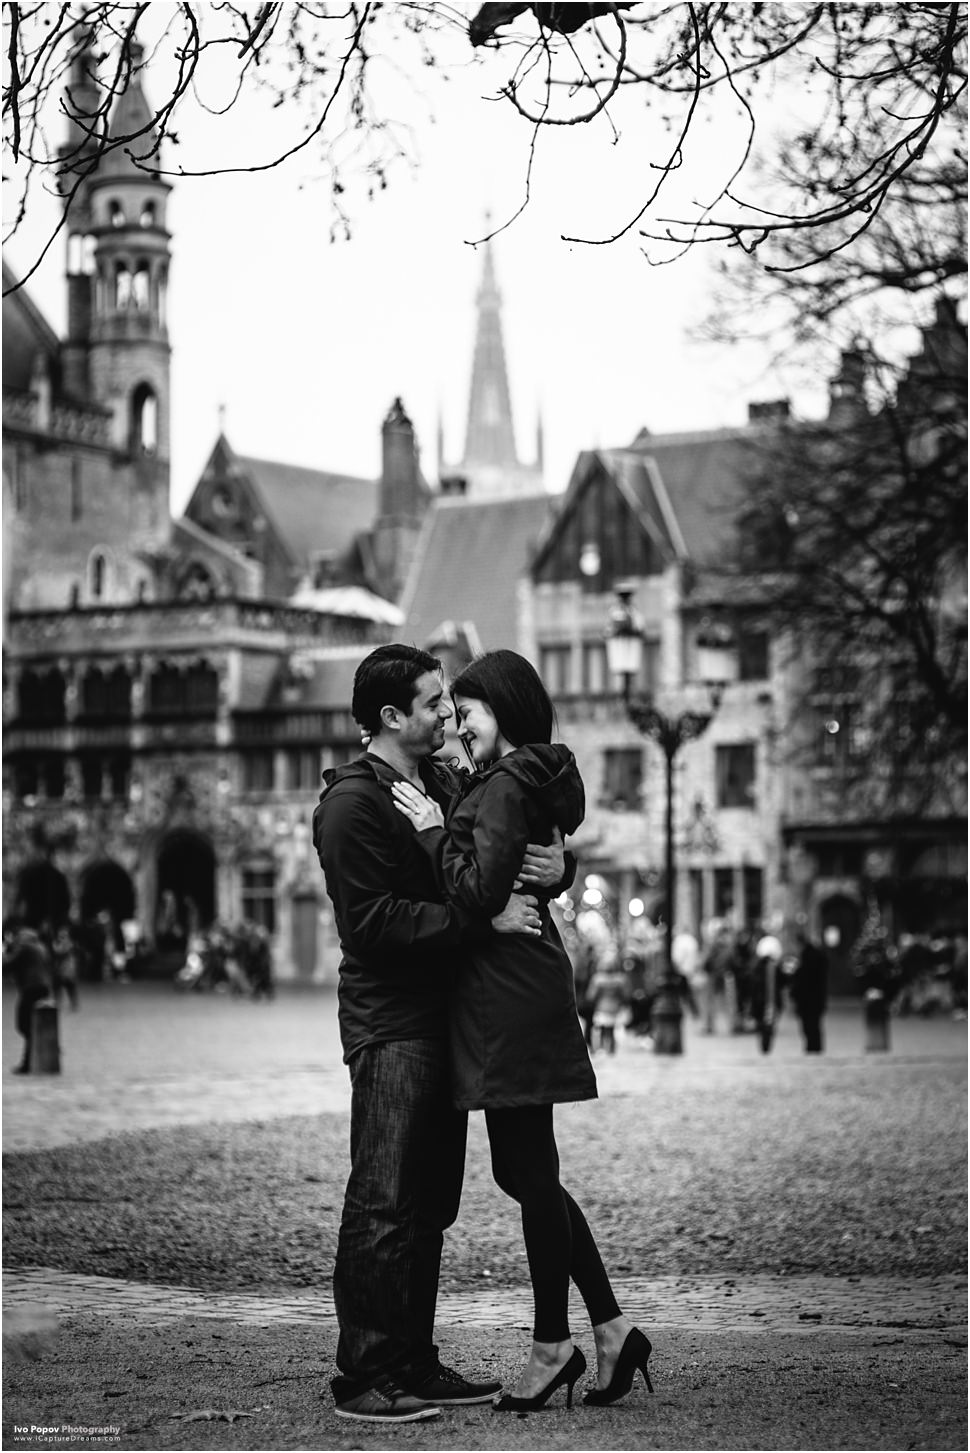 Romantic engagement session in Brugge on Christmas